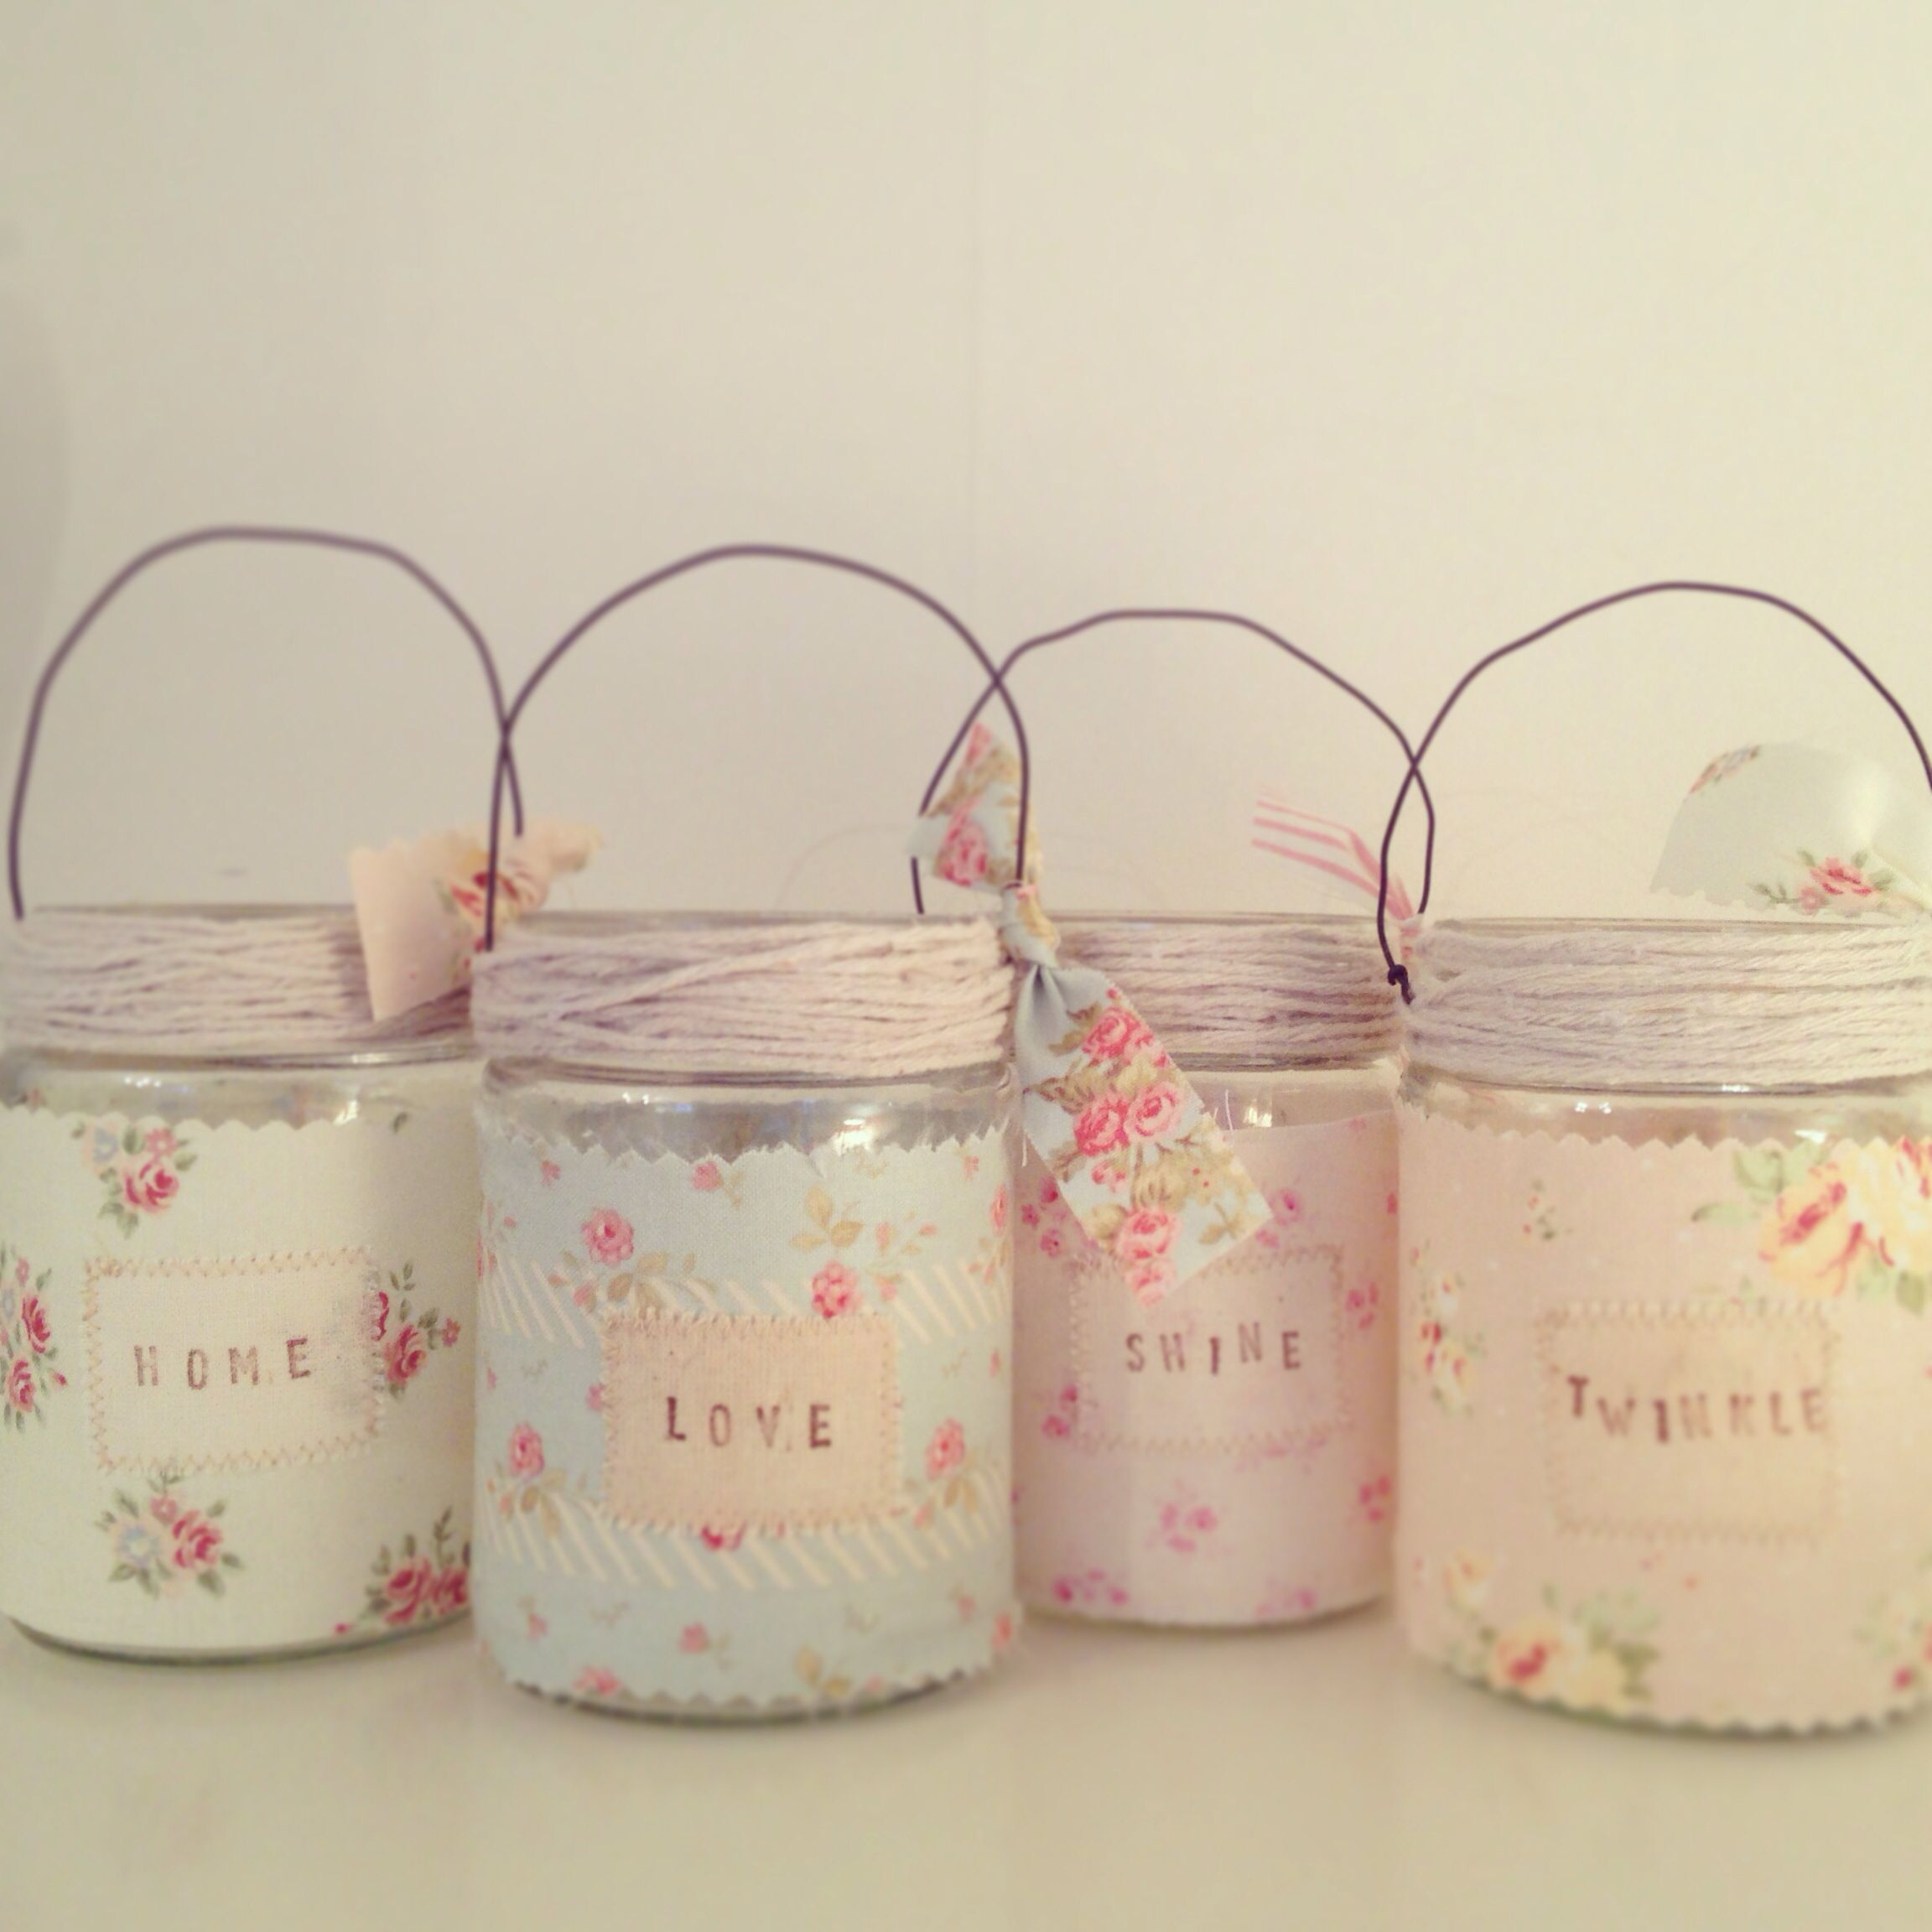 Shabby Chic Tealight Holders Cottage Style Rustic Decor Diy Project Idea Shabby Chic Crafts Decorated Jars Jam Jar